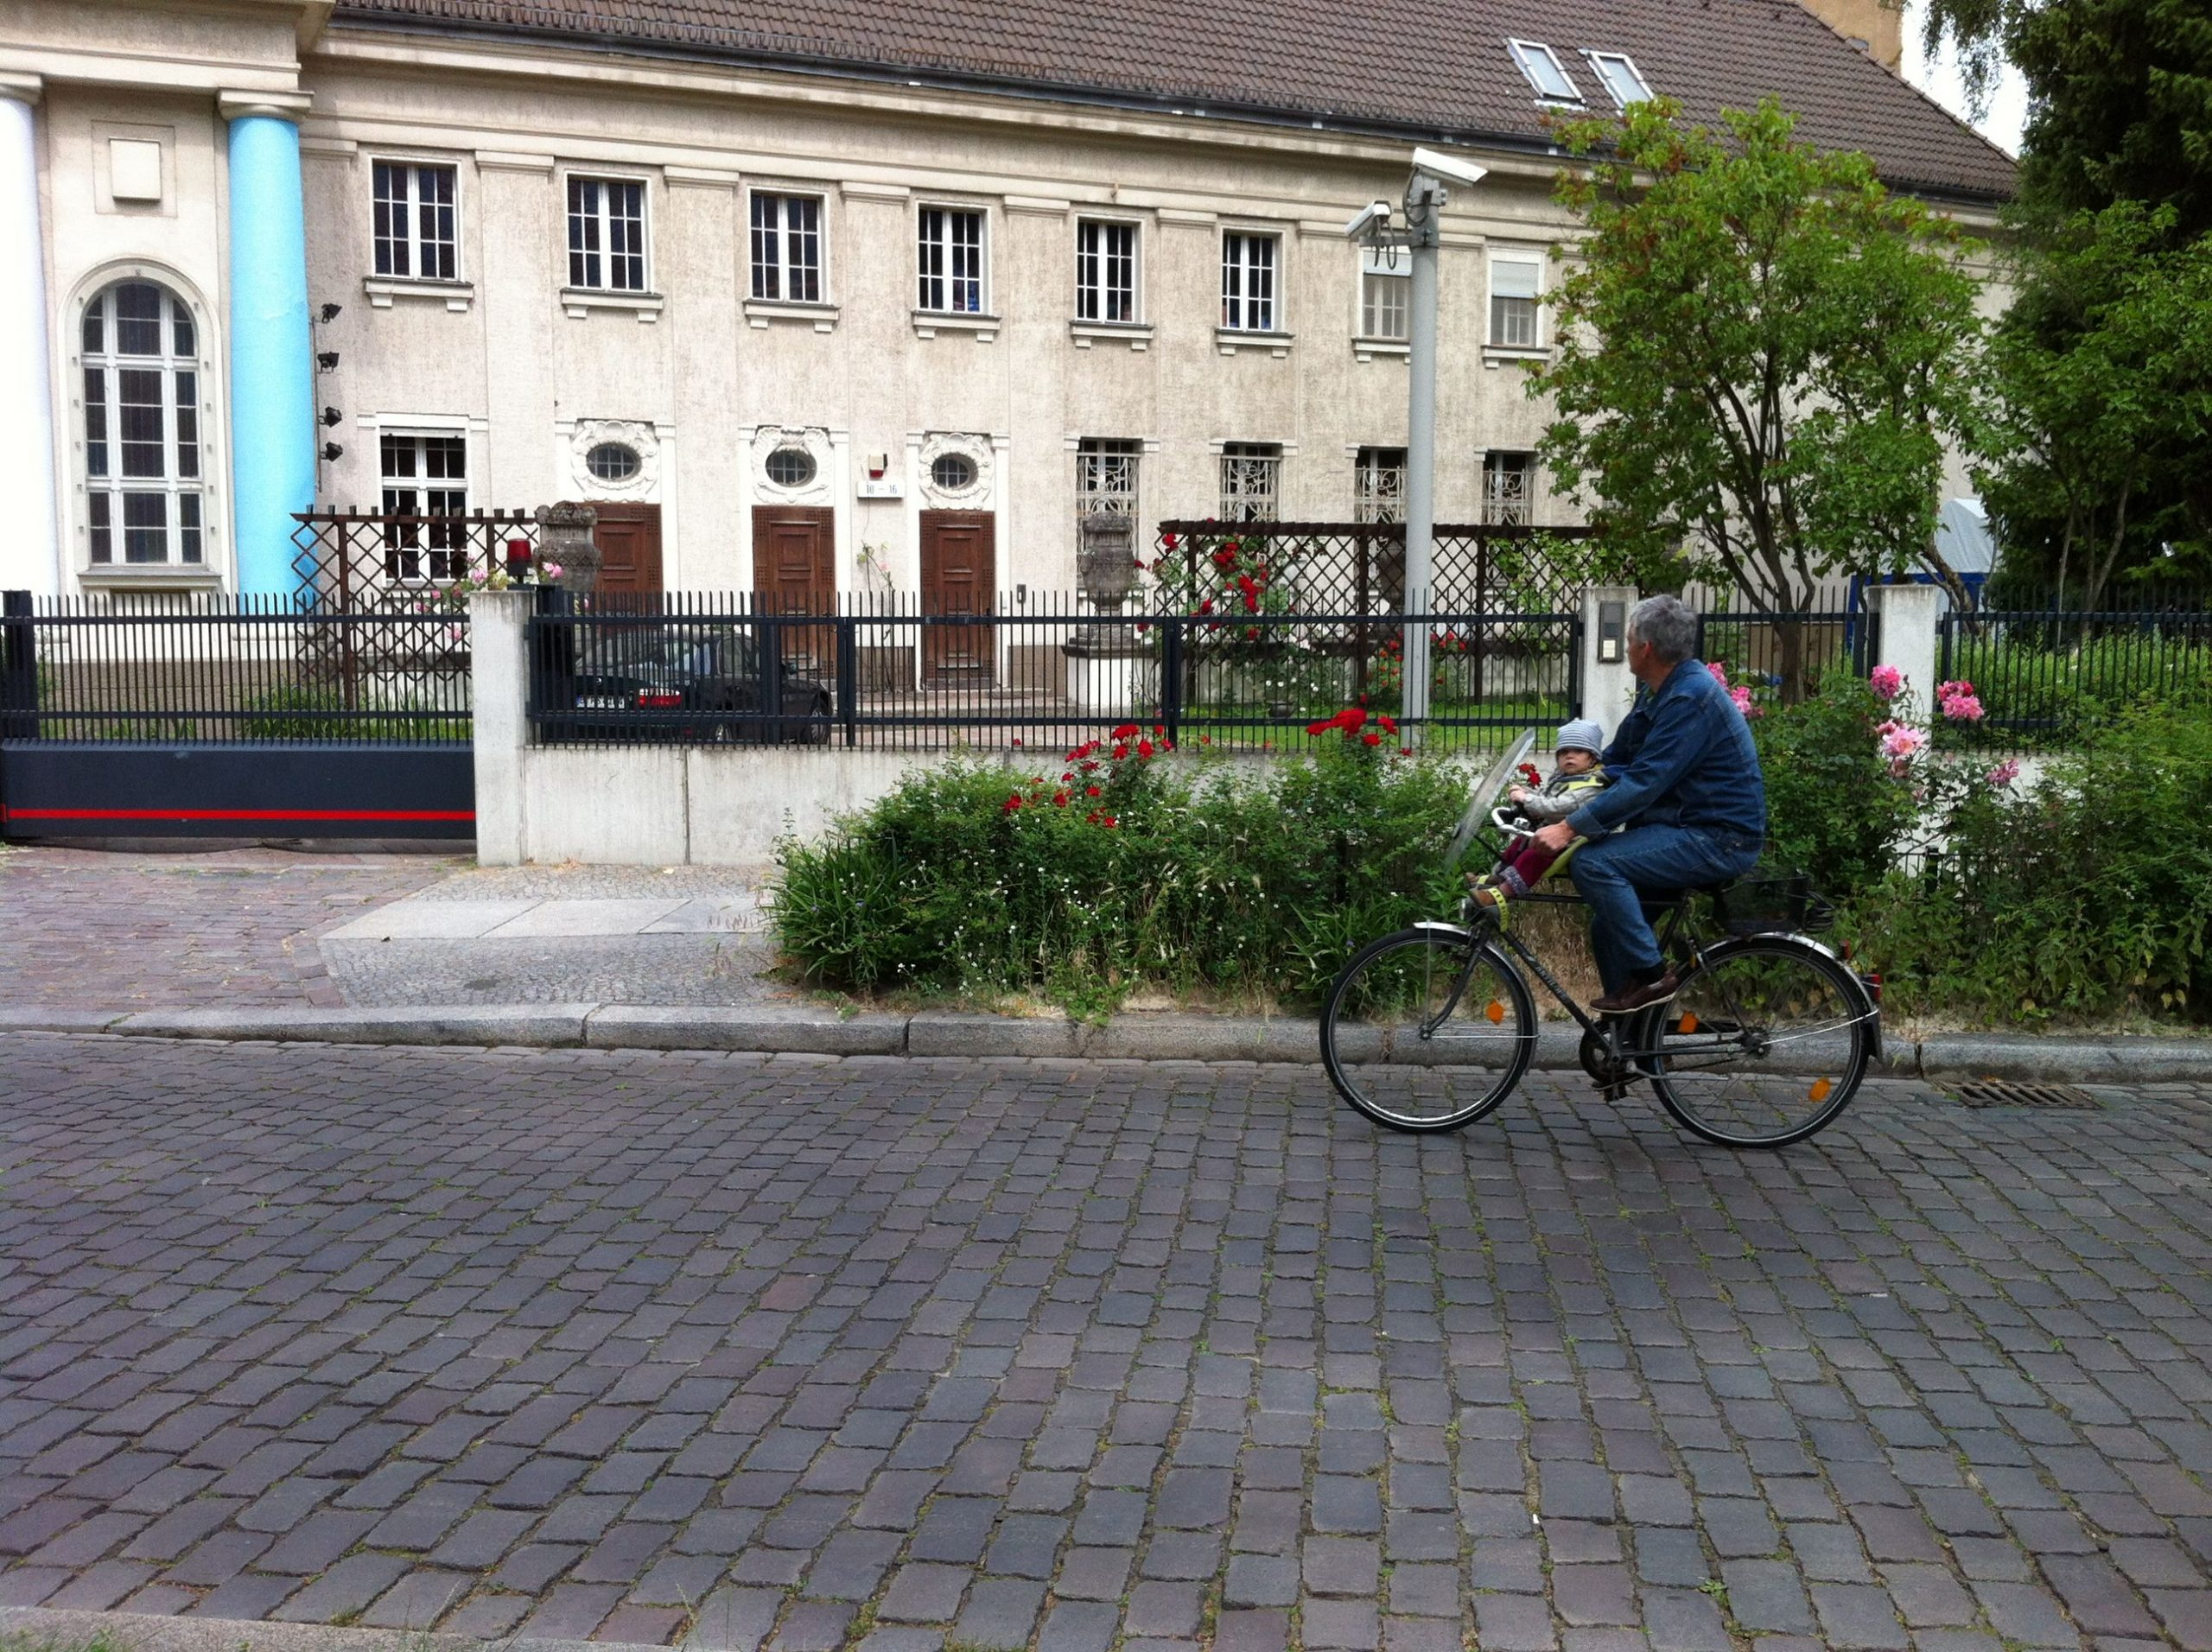 People of all ages and walks of life commute by bicycle in Berlin.